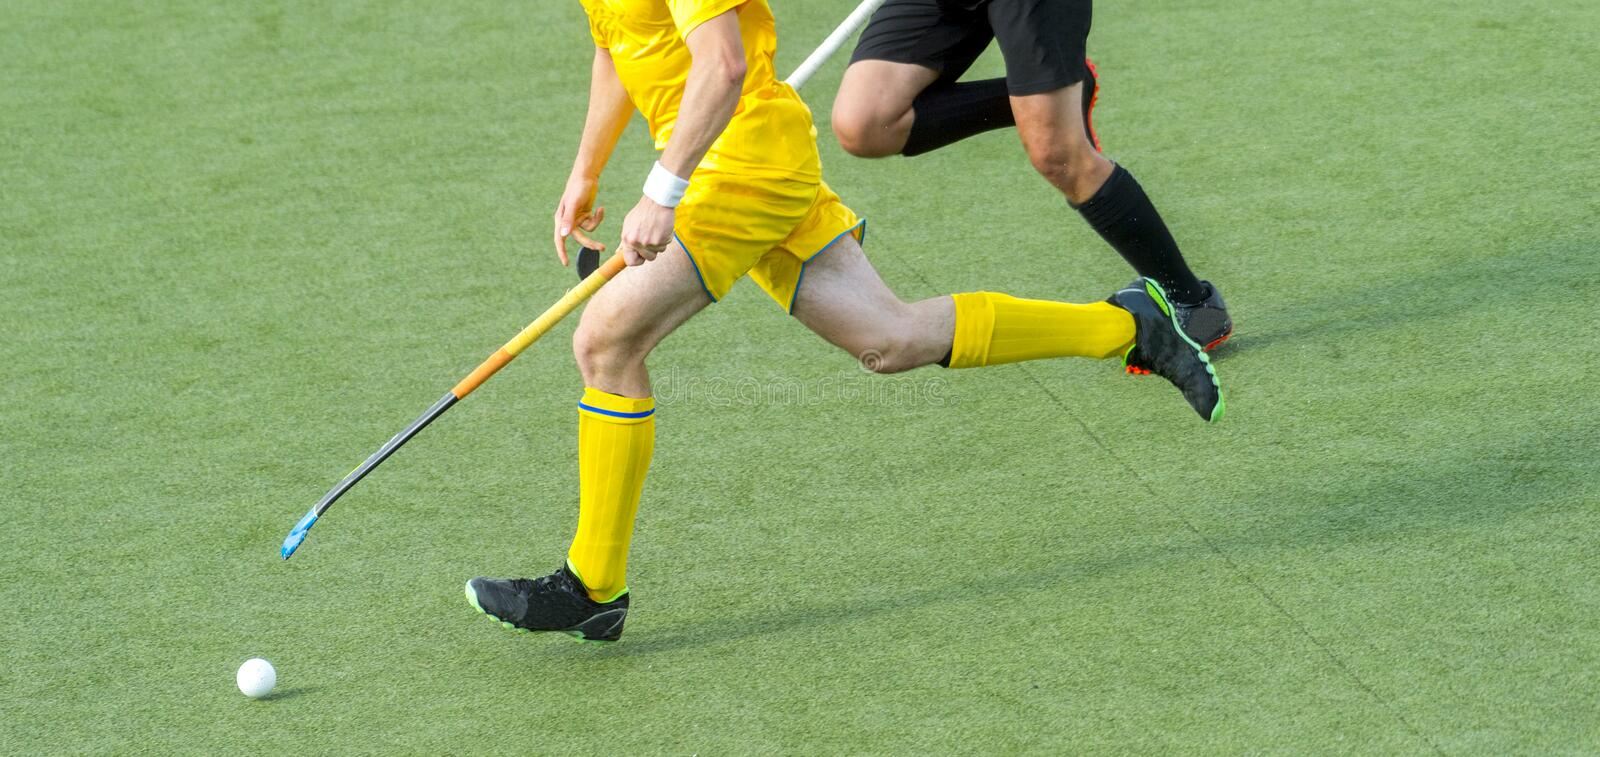 Two field hockey player, fighting for the ball on the midfield during an intense match on artificial grass.  stock photography